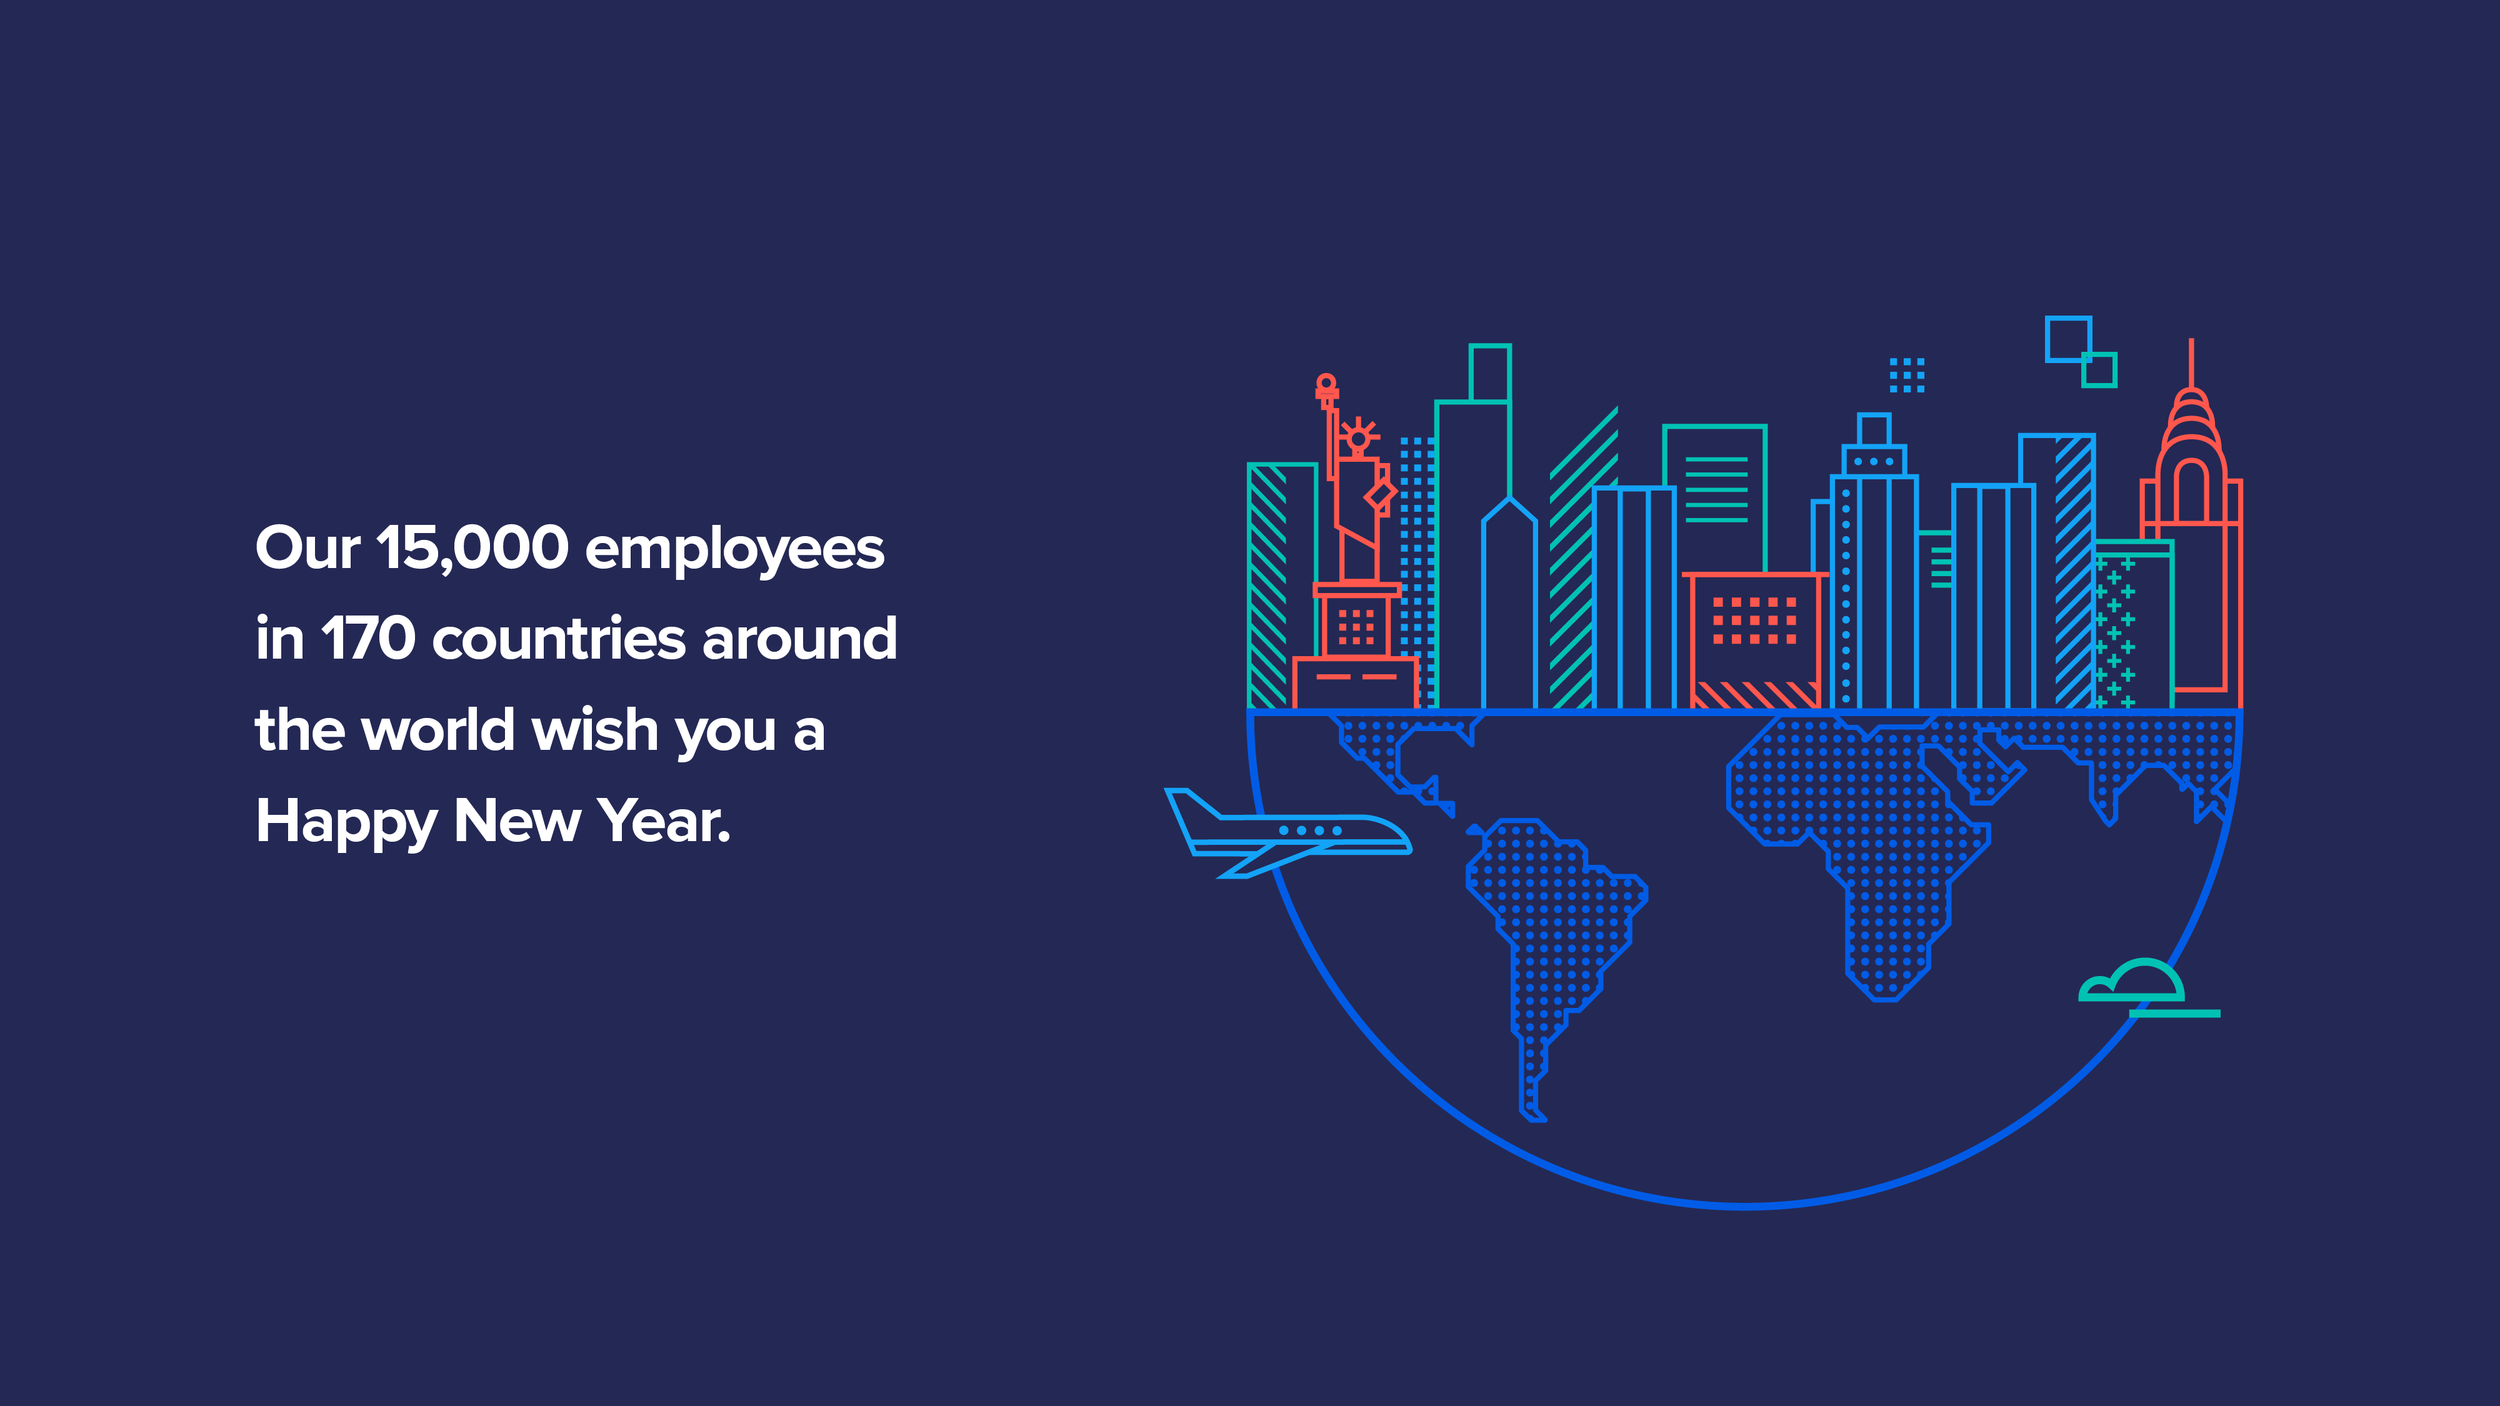 infor_holiday_card_121816_MD_NYC.png